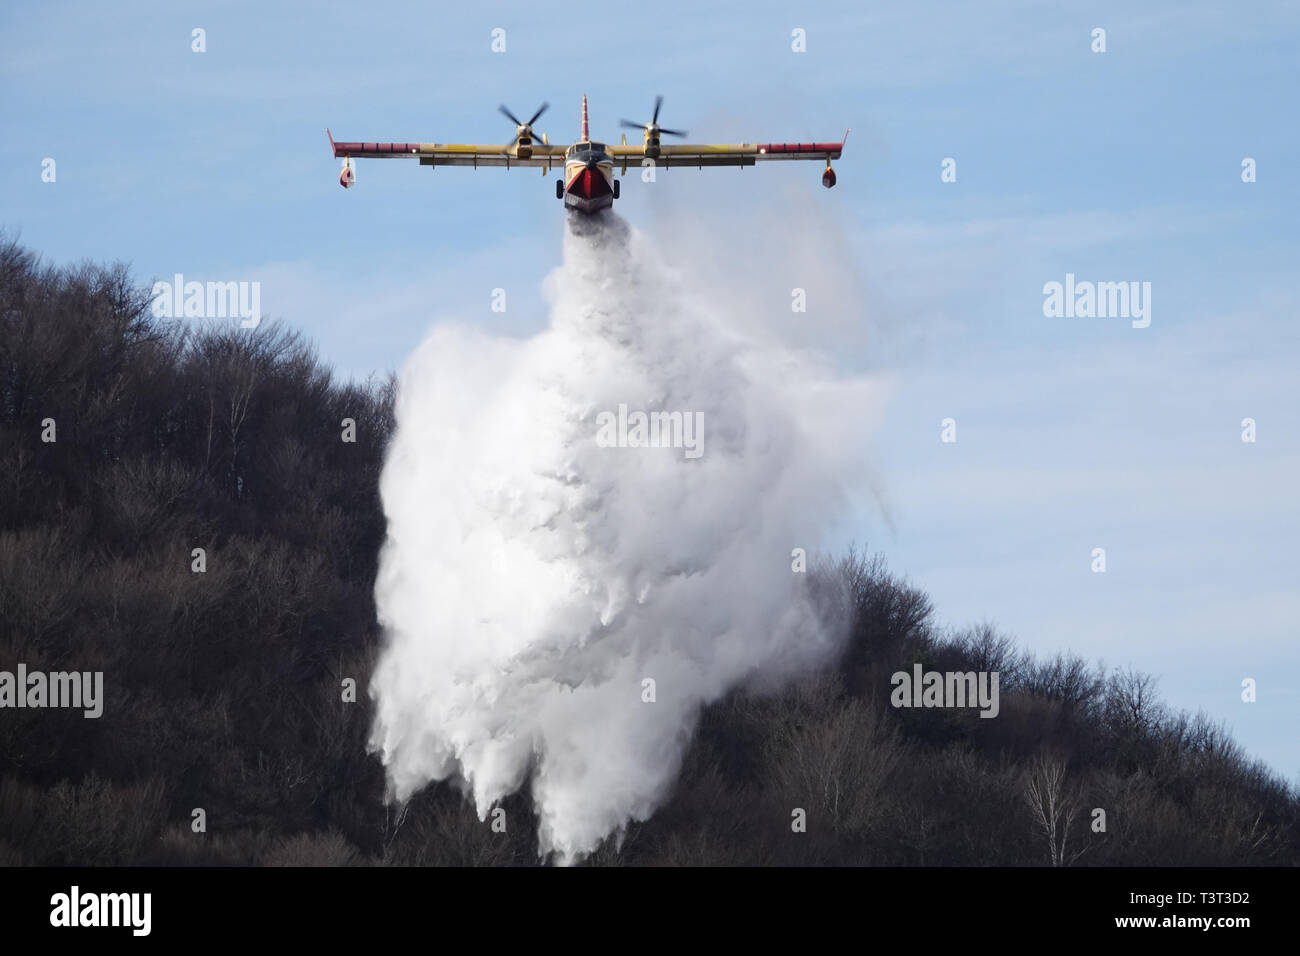 Canadair, Forest fire, water bomber, wildfire, extinguish fire, - Stock Image